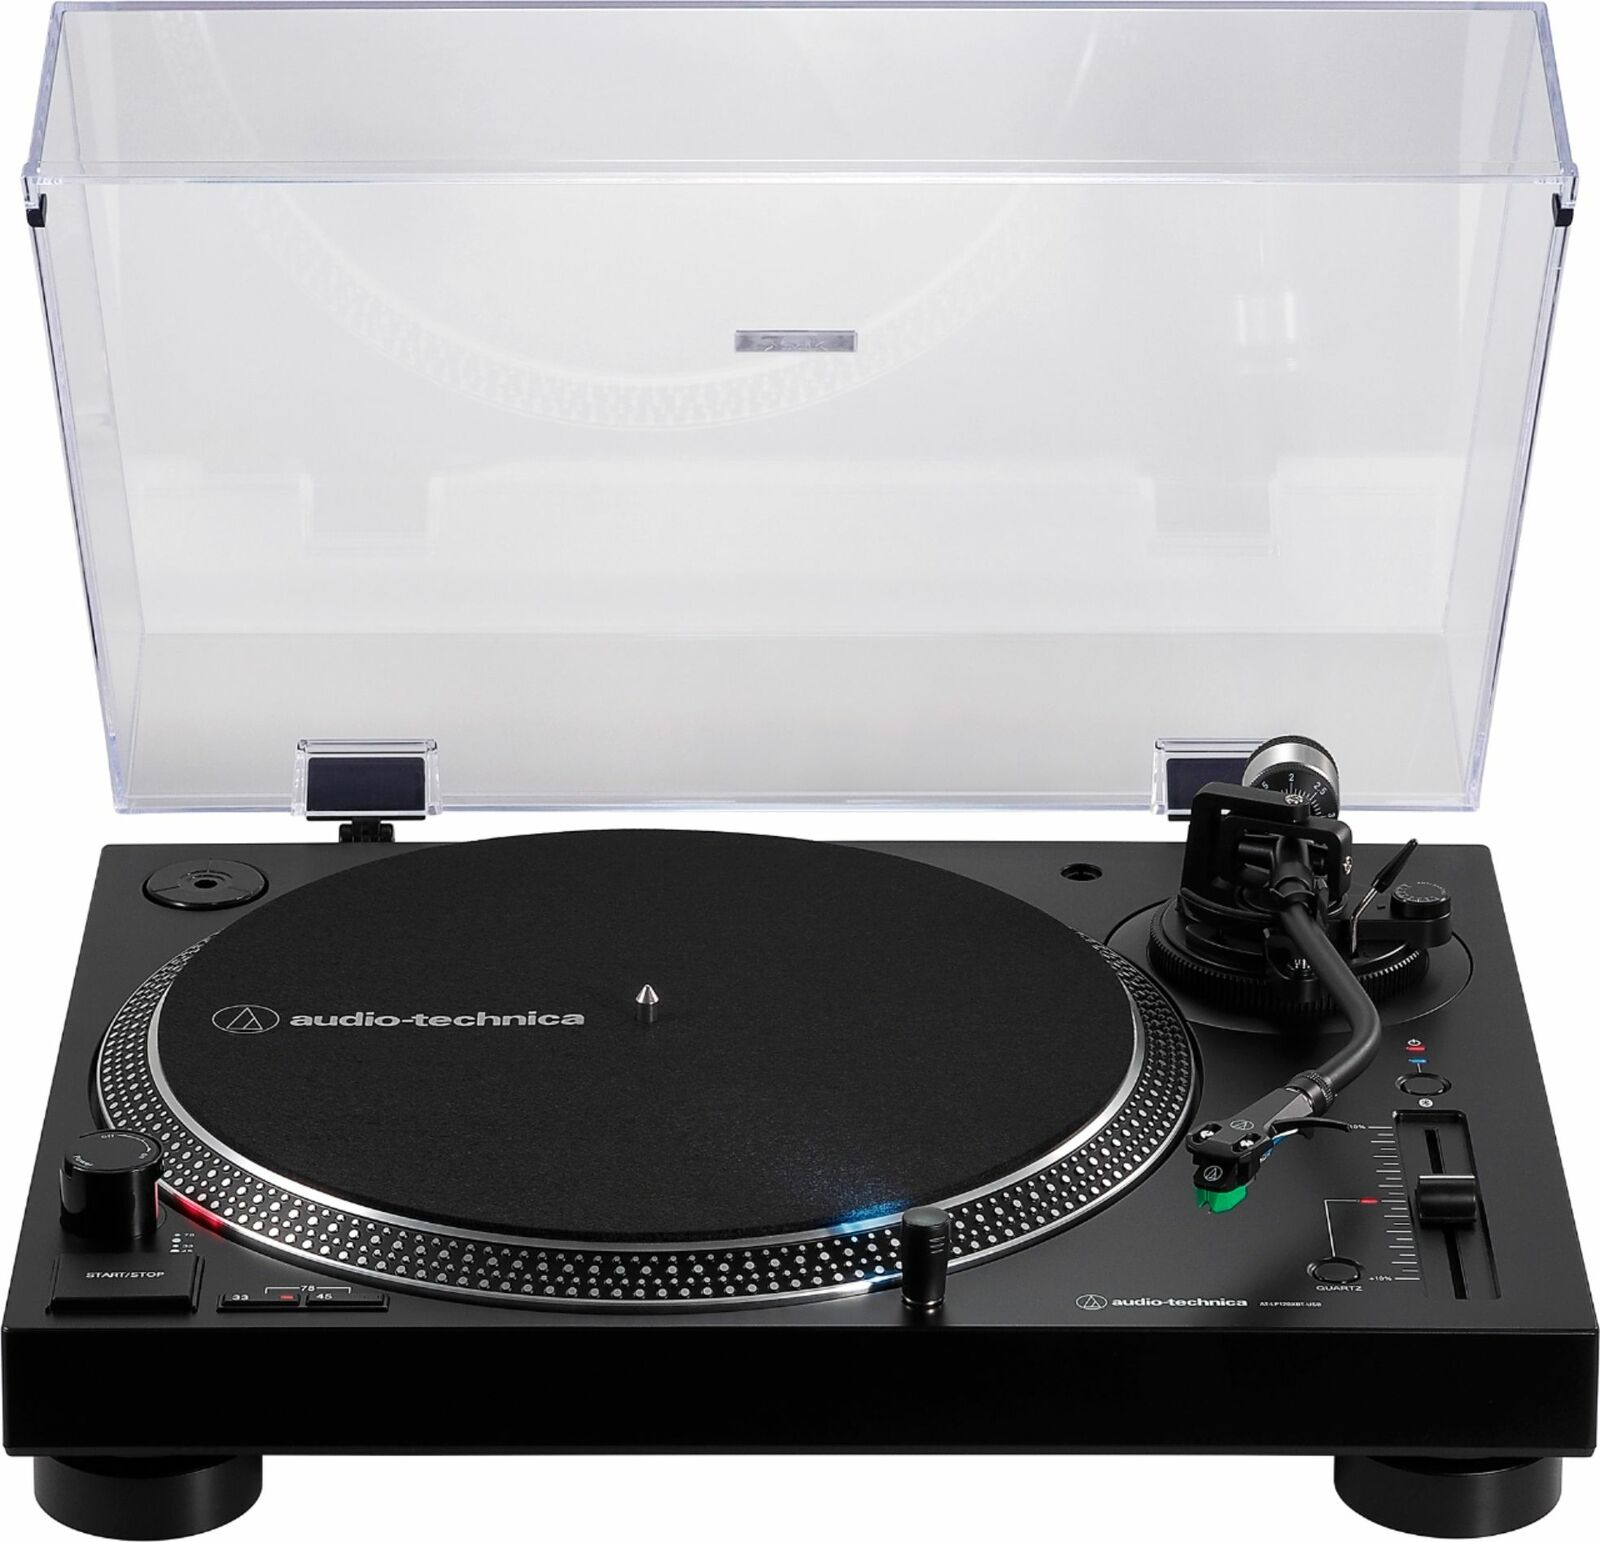 Audio-Technica - ATLP120XBT Bluetooth Stereo Turntable - Black. Buy it now for 299.99